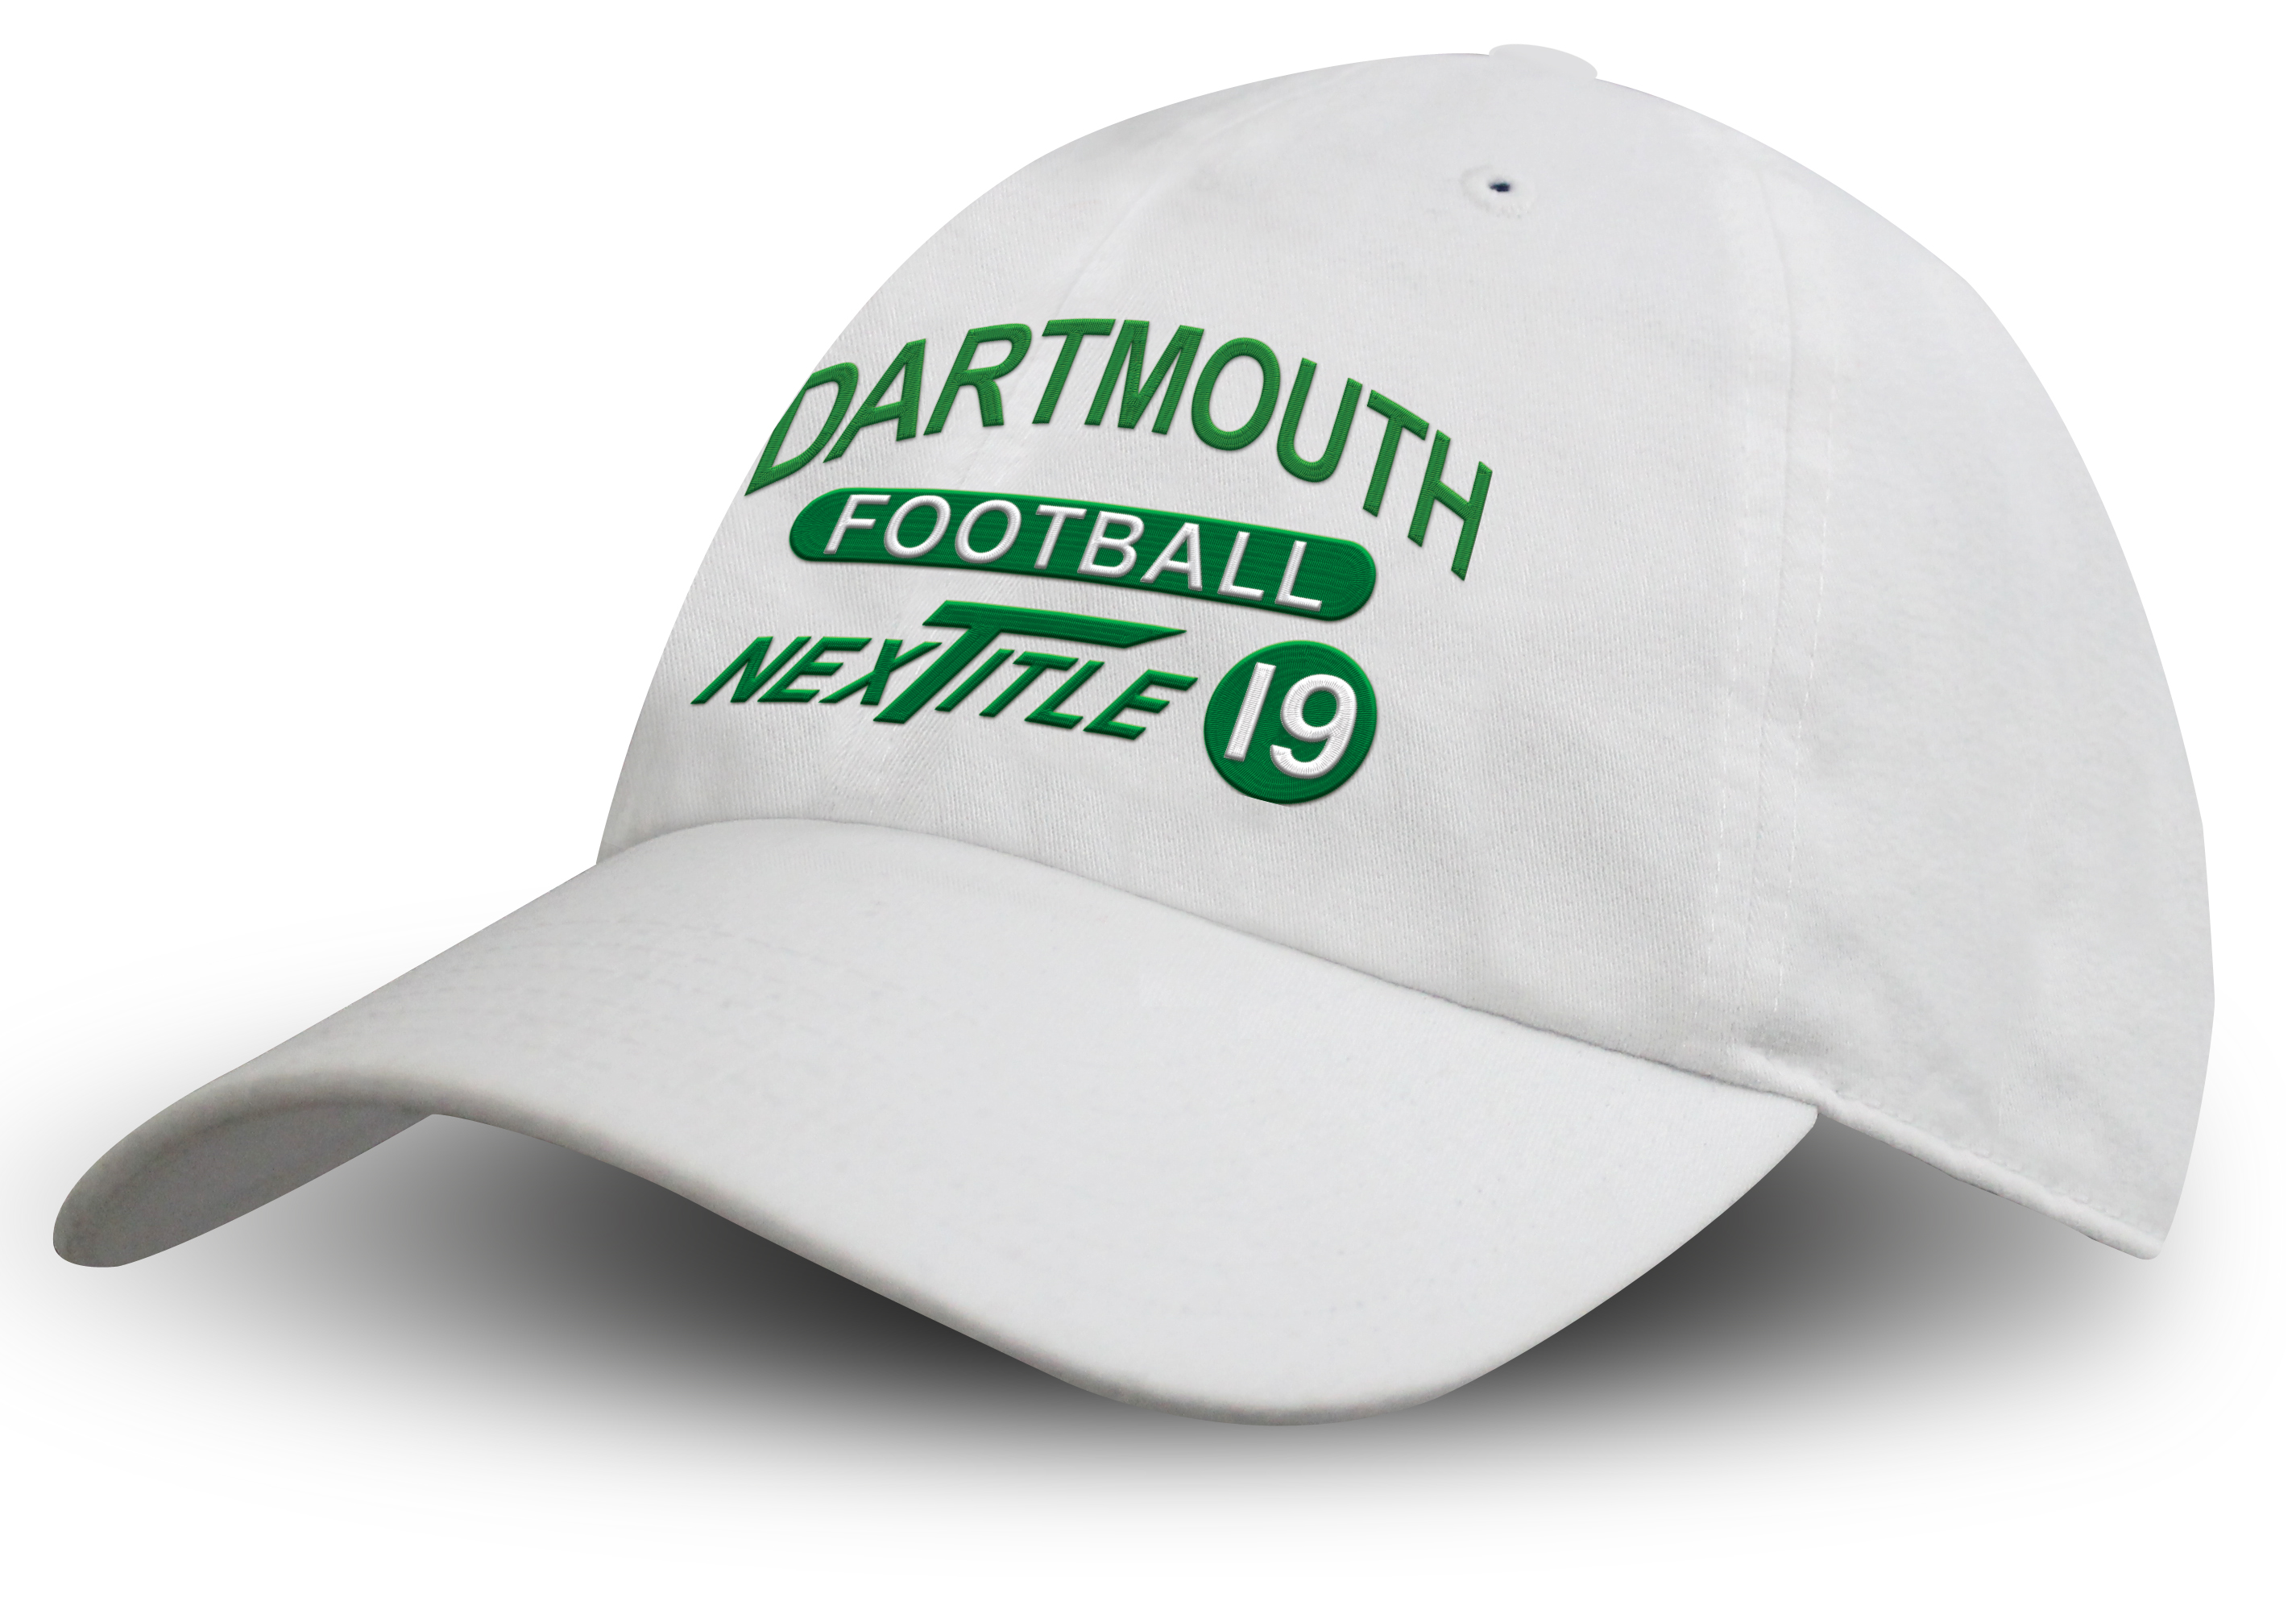 Dartmouth NexTitle 19 Hat